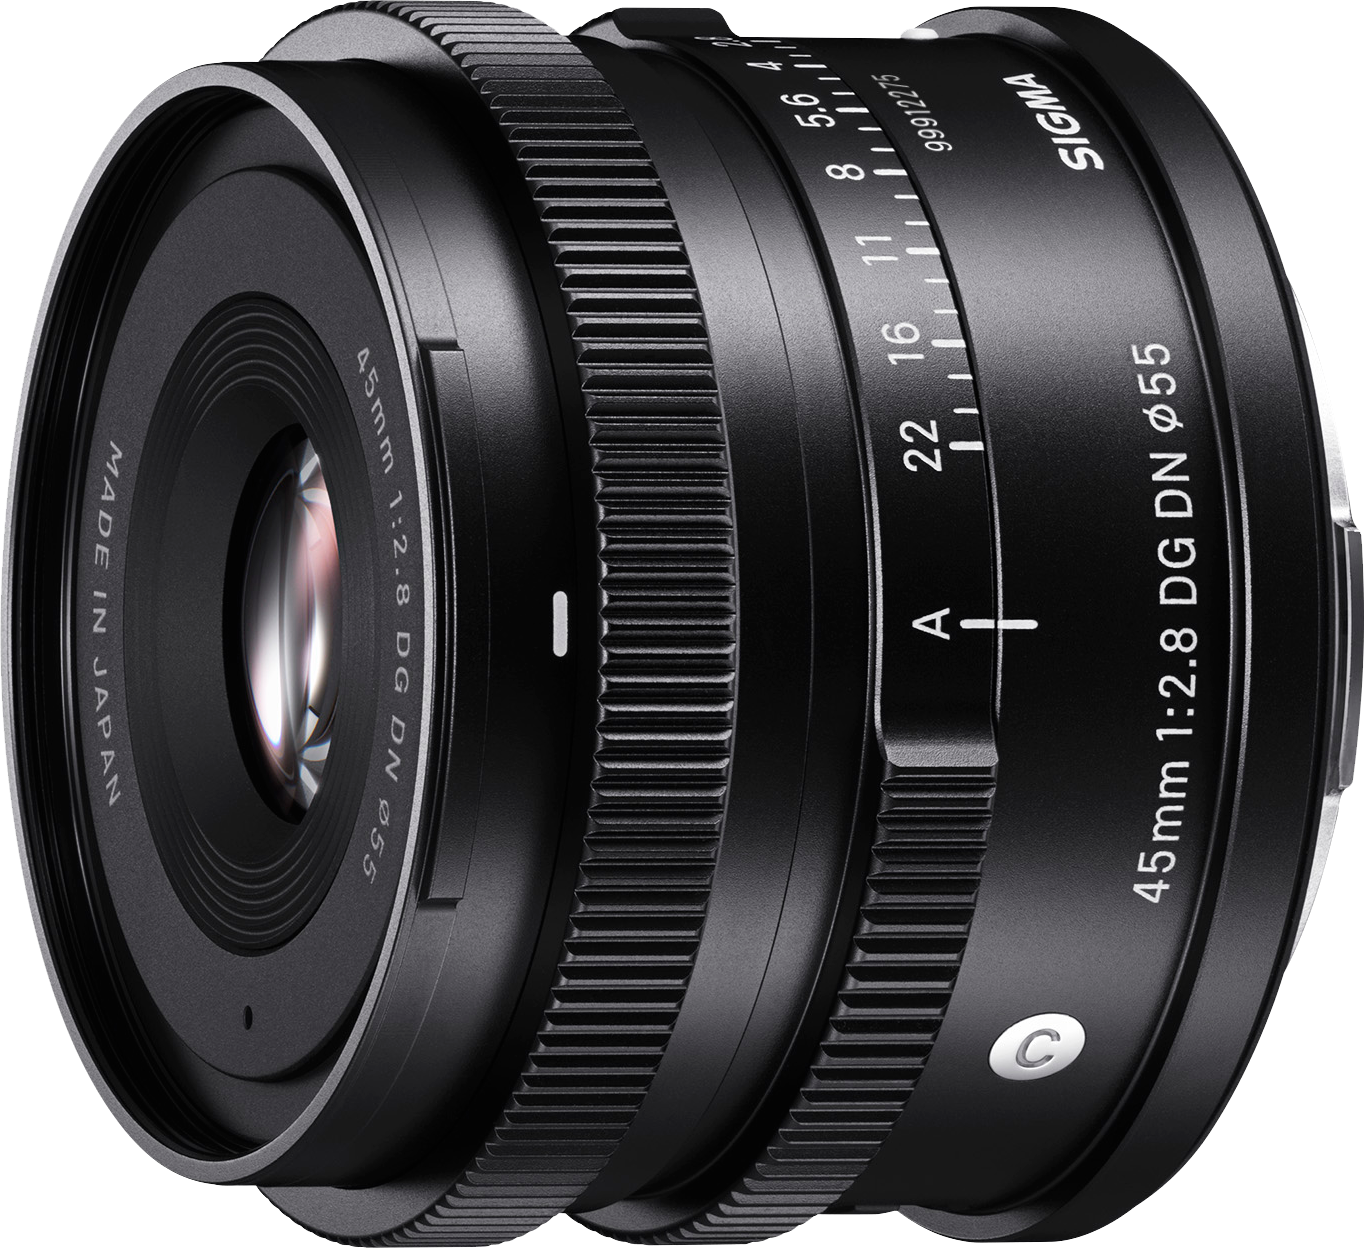 Sigma 45mm F2 8 DG DN Contemporary: Digital Photography Review